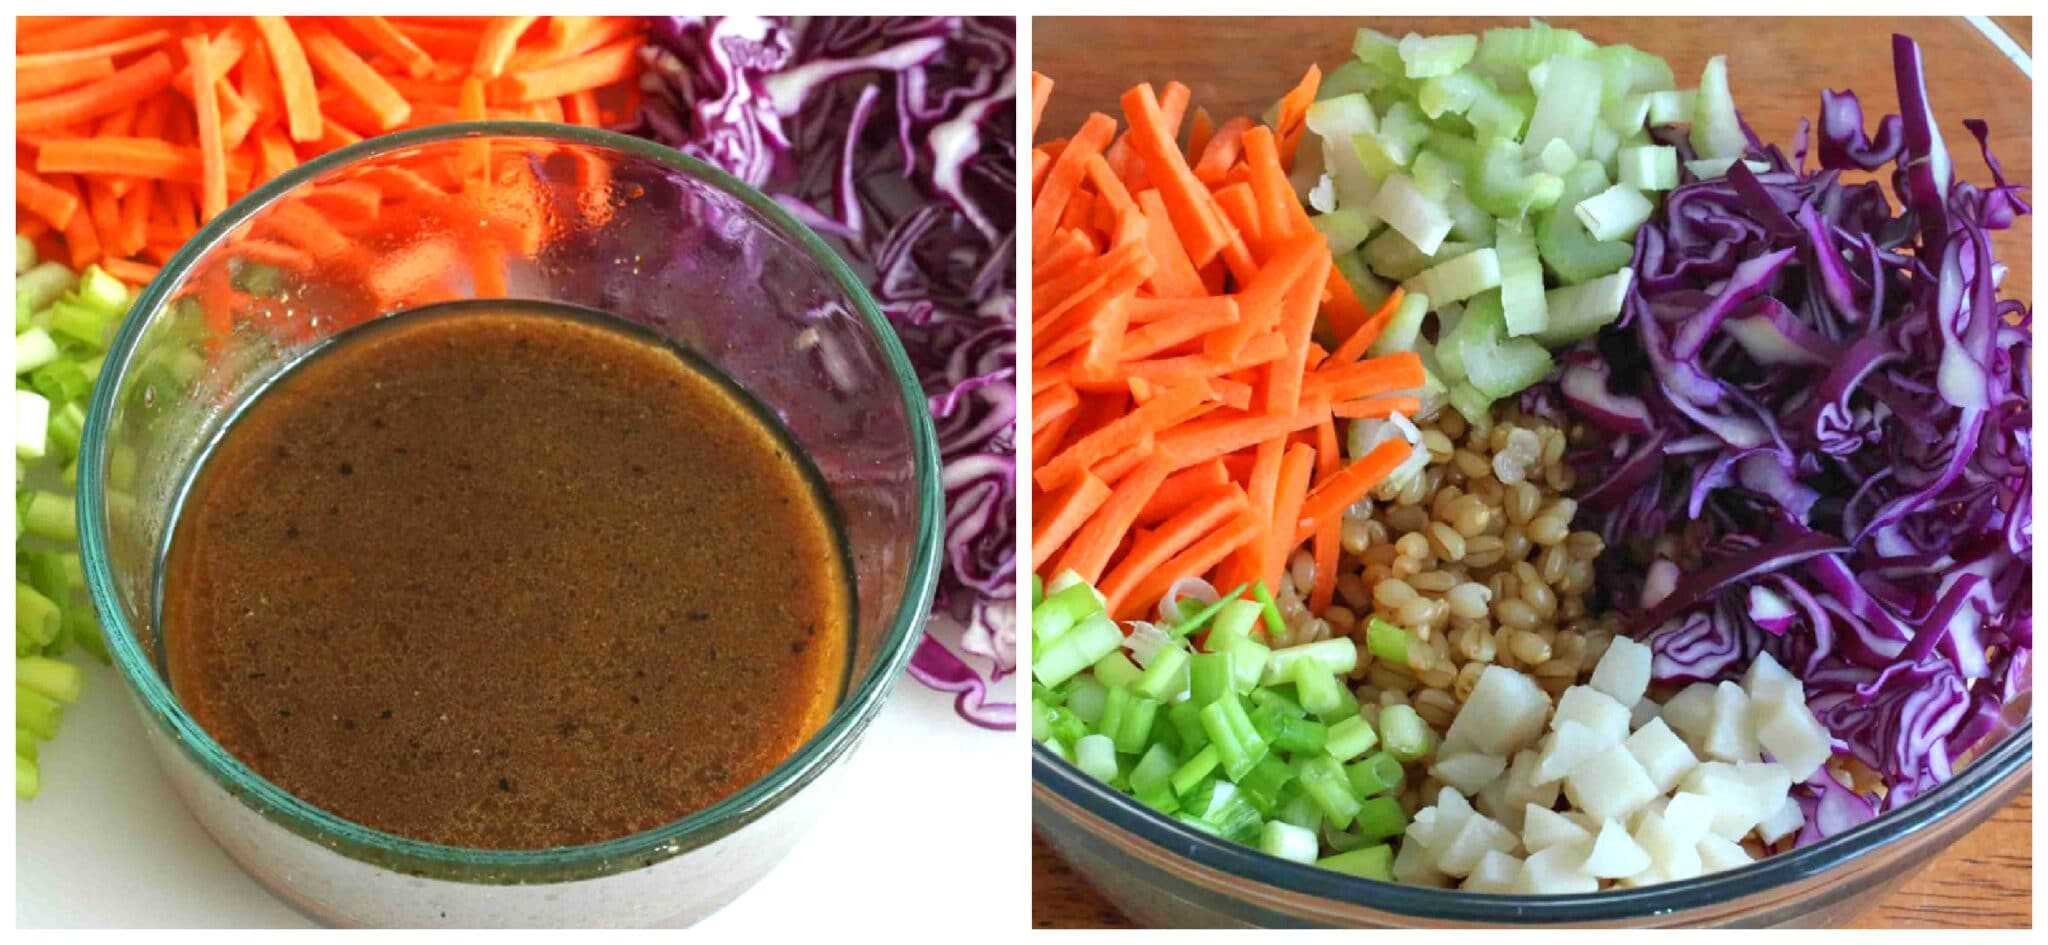 dressing with bowl of grains and vegetables